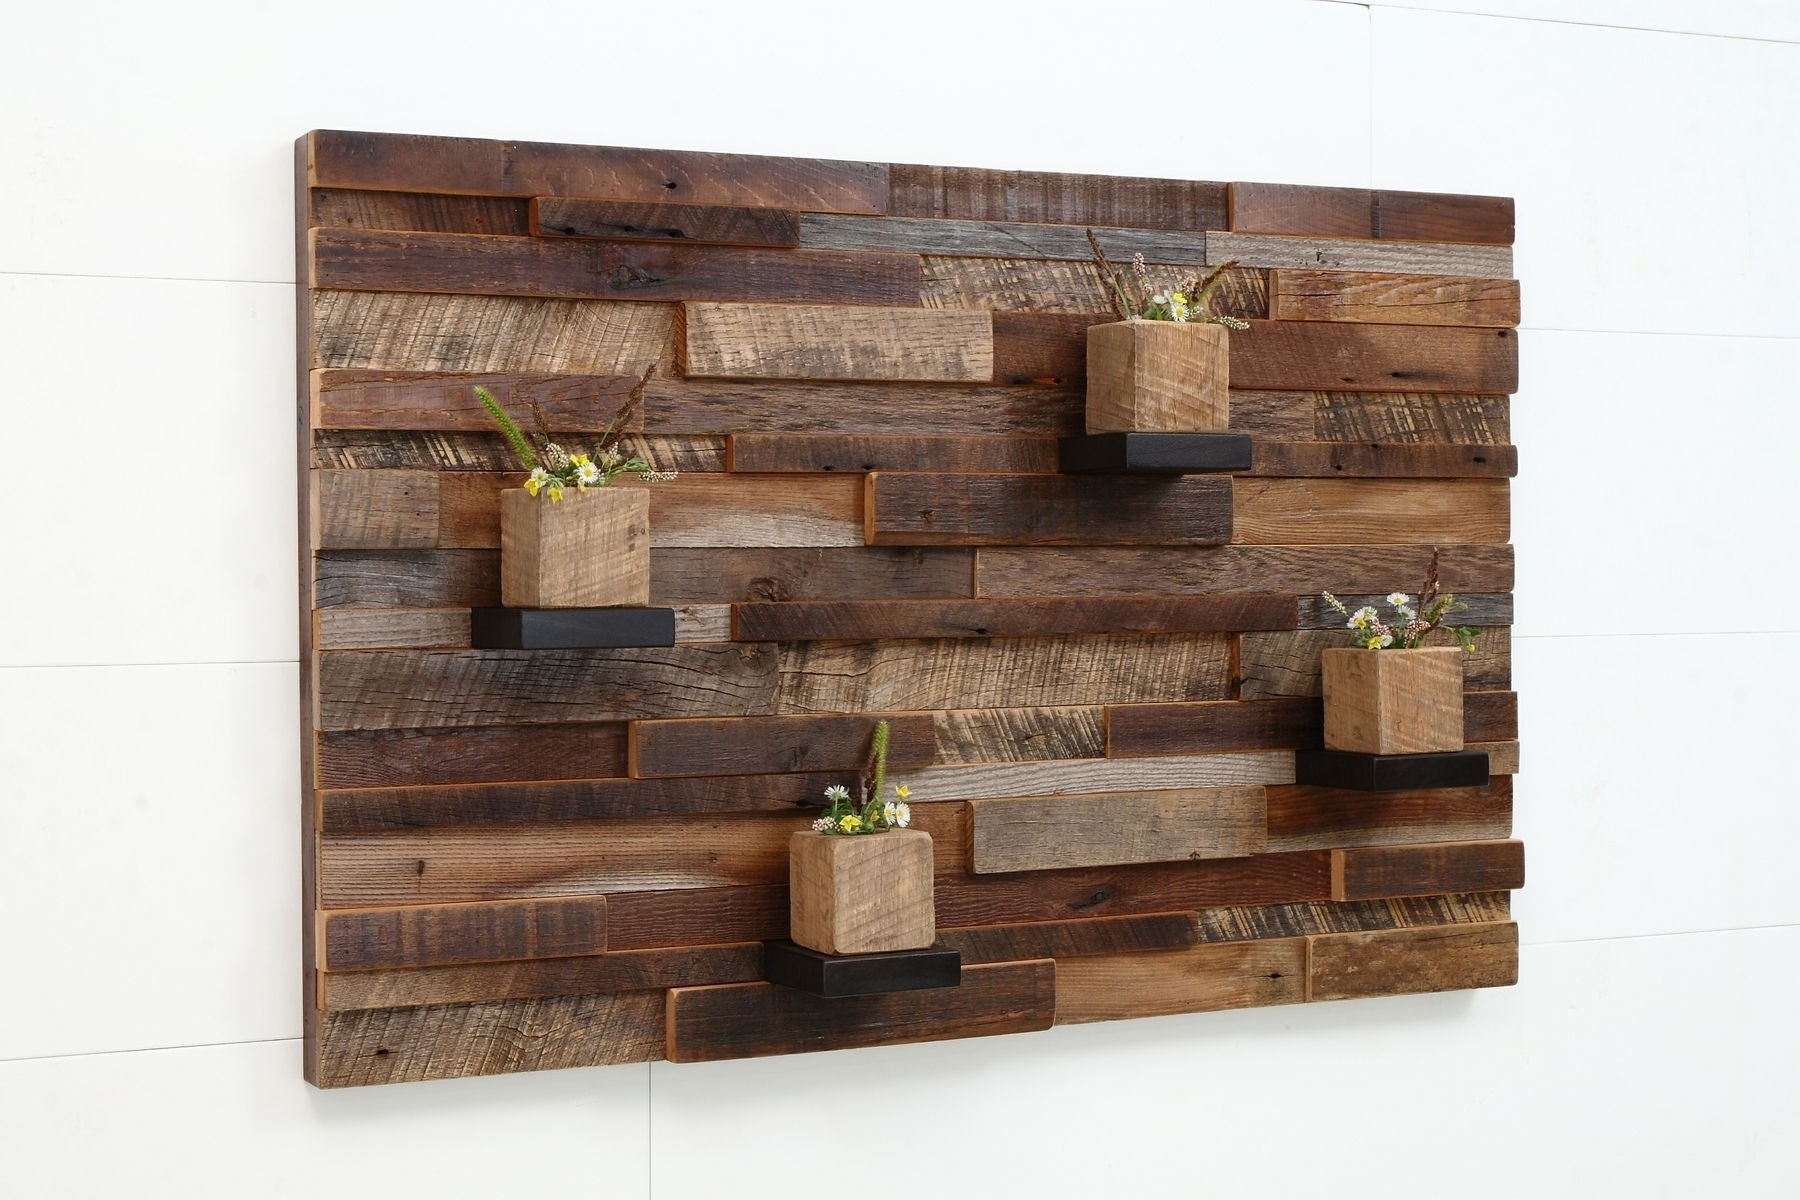 Hand Crafted Reclaimed Wood Wall Art Made Of Old Barnwood. With Regard To Latest Wooden Wall Art (Gallery 4 of 15)